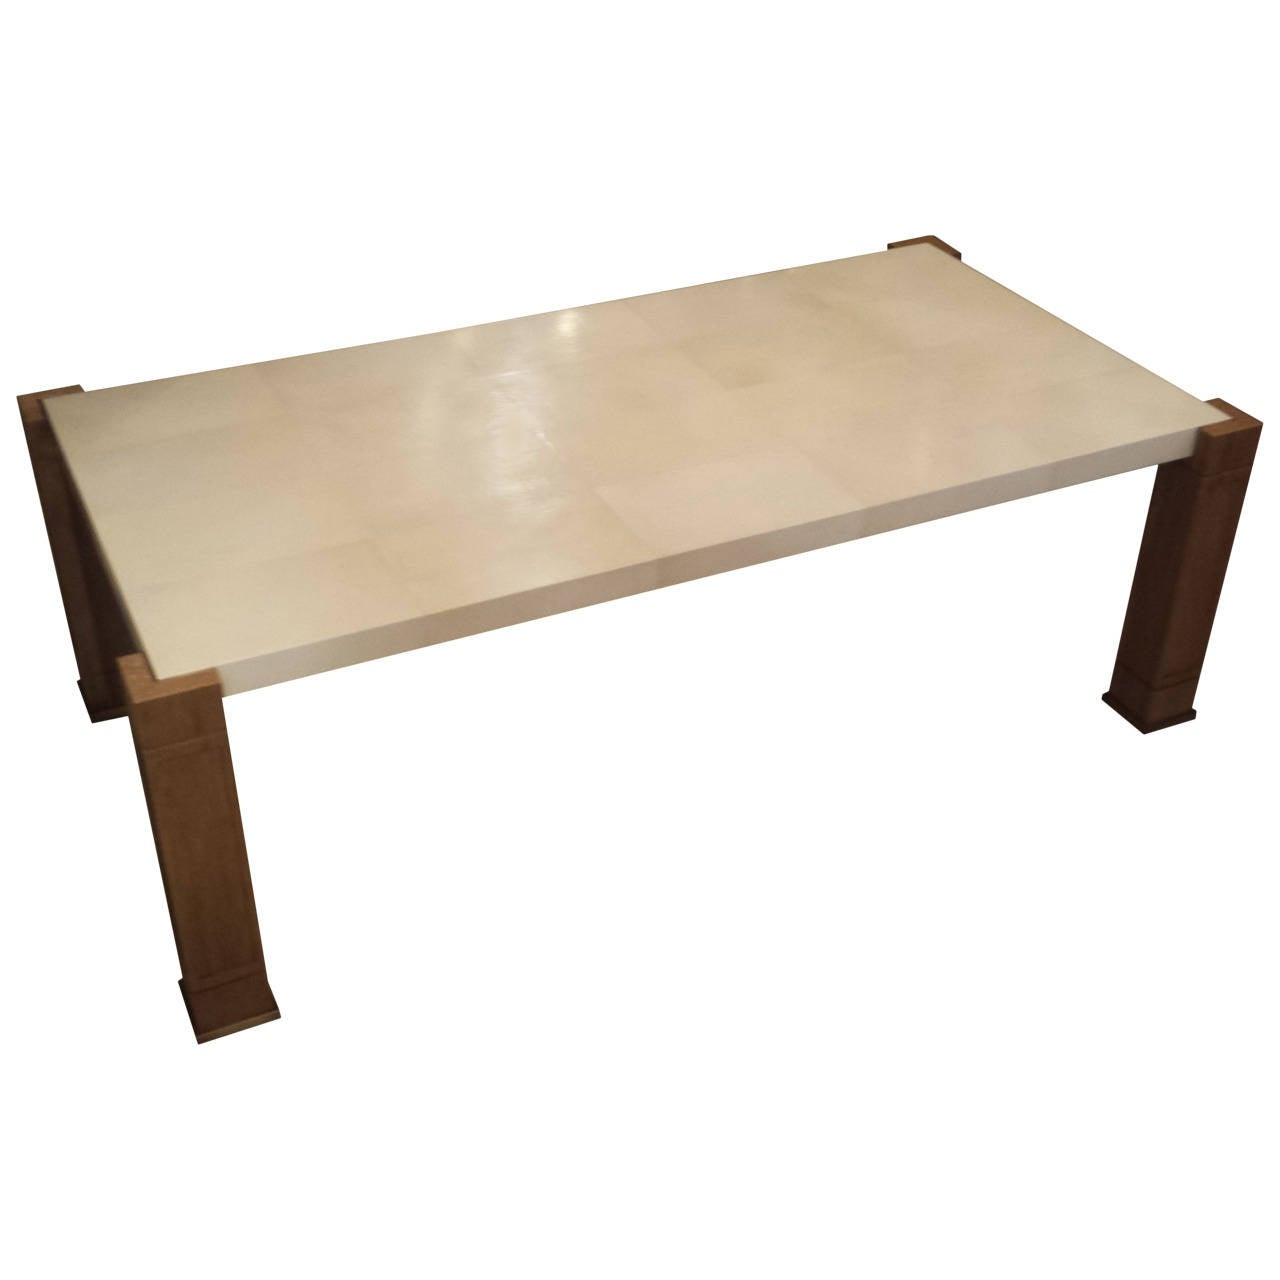 Exquisite Parchment And Cerused Oak Coffee Table For Sale At 1stdibs